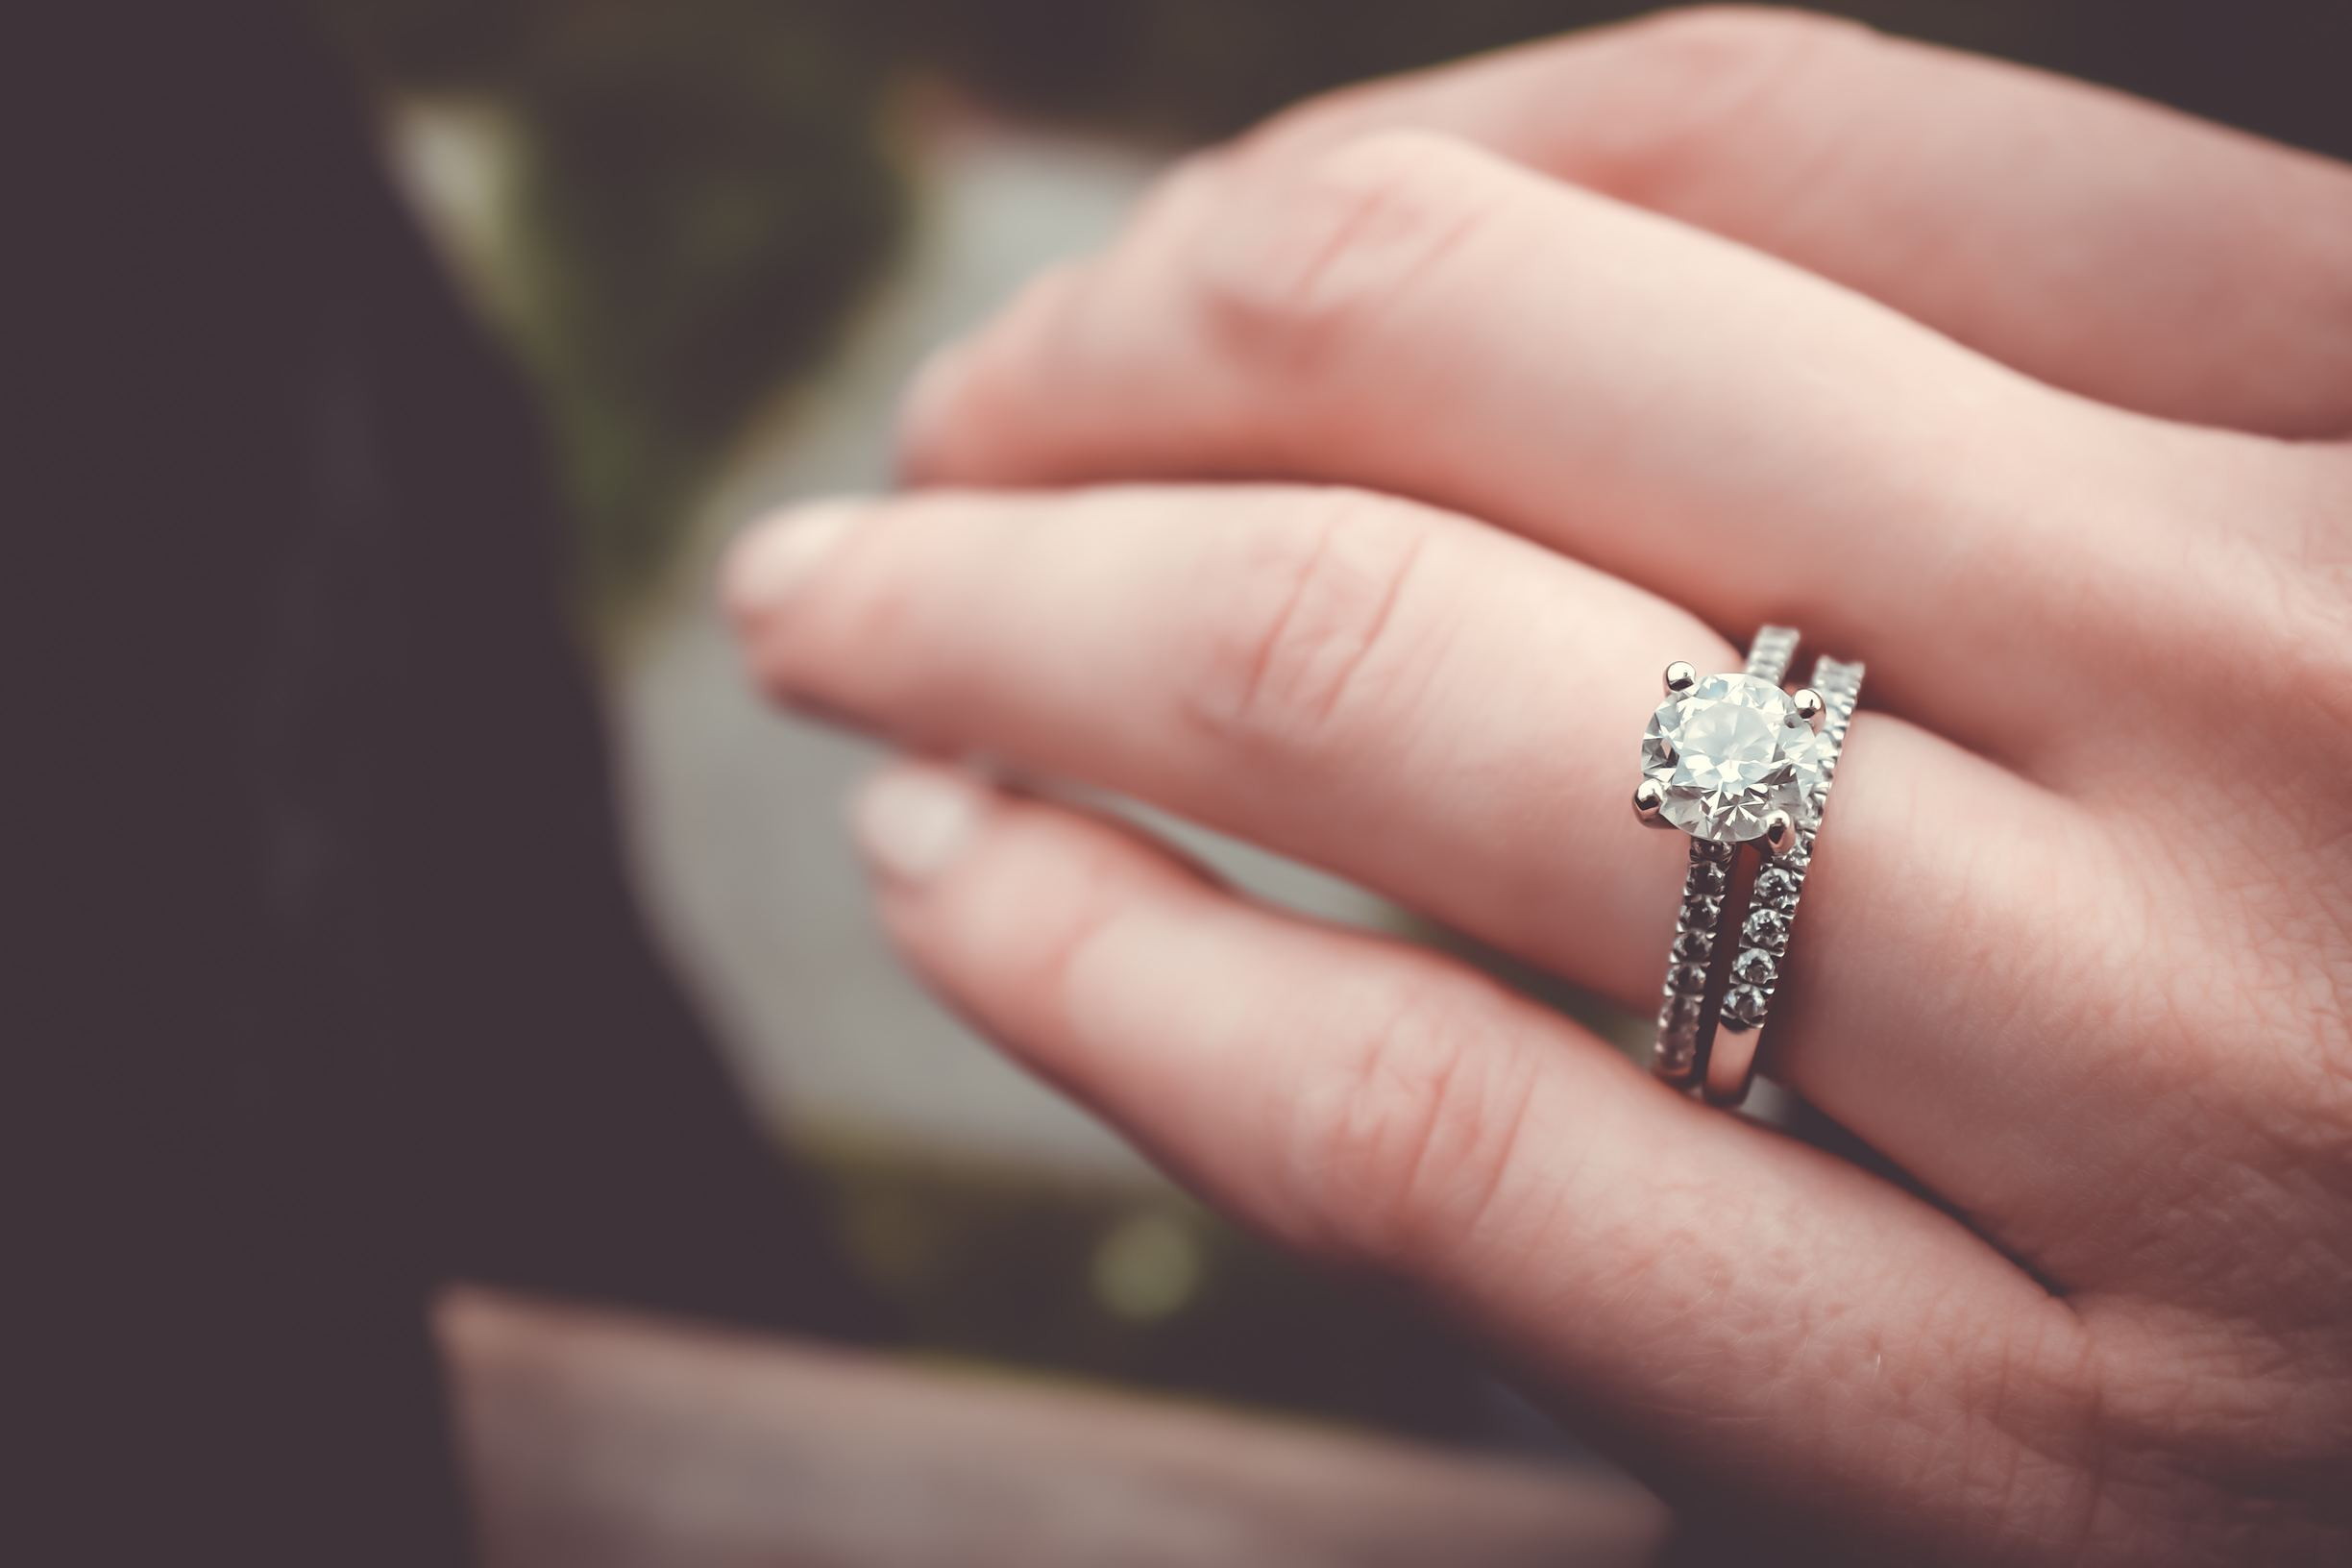 10 Great Reasons to choose a Second-Hand Engagement Ring - Escrow.com